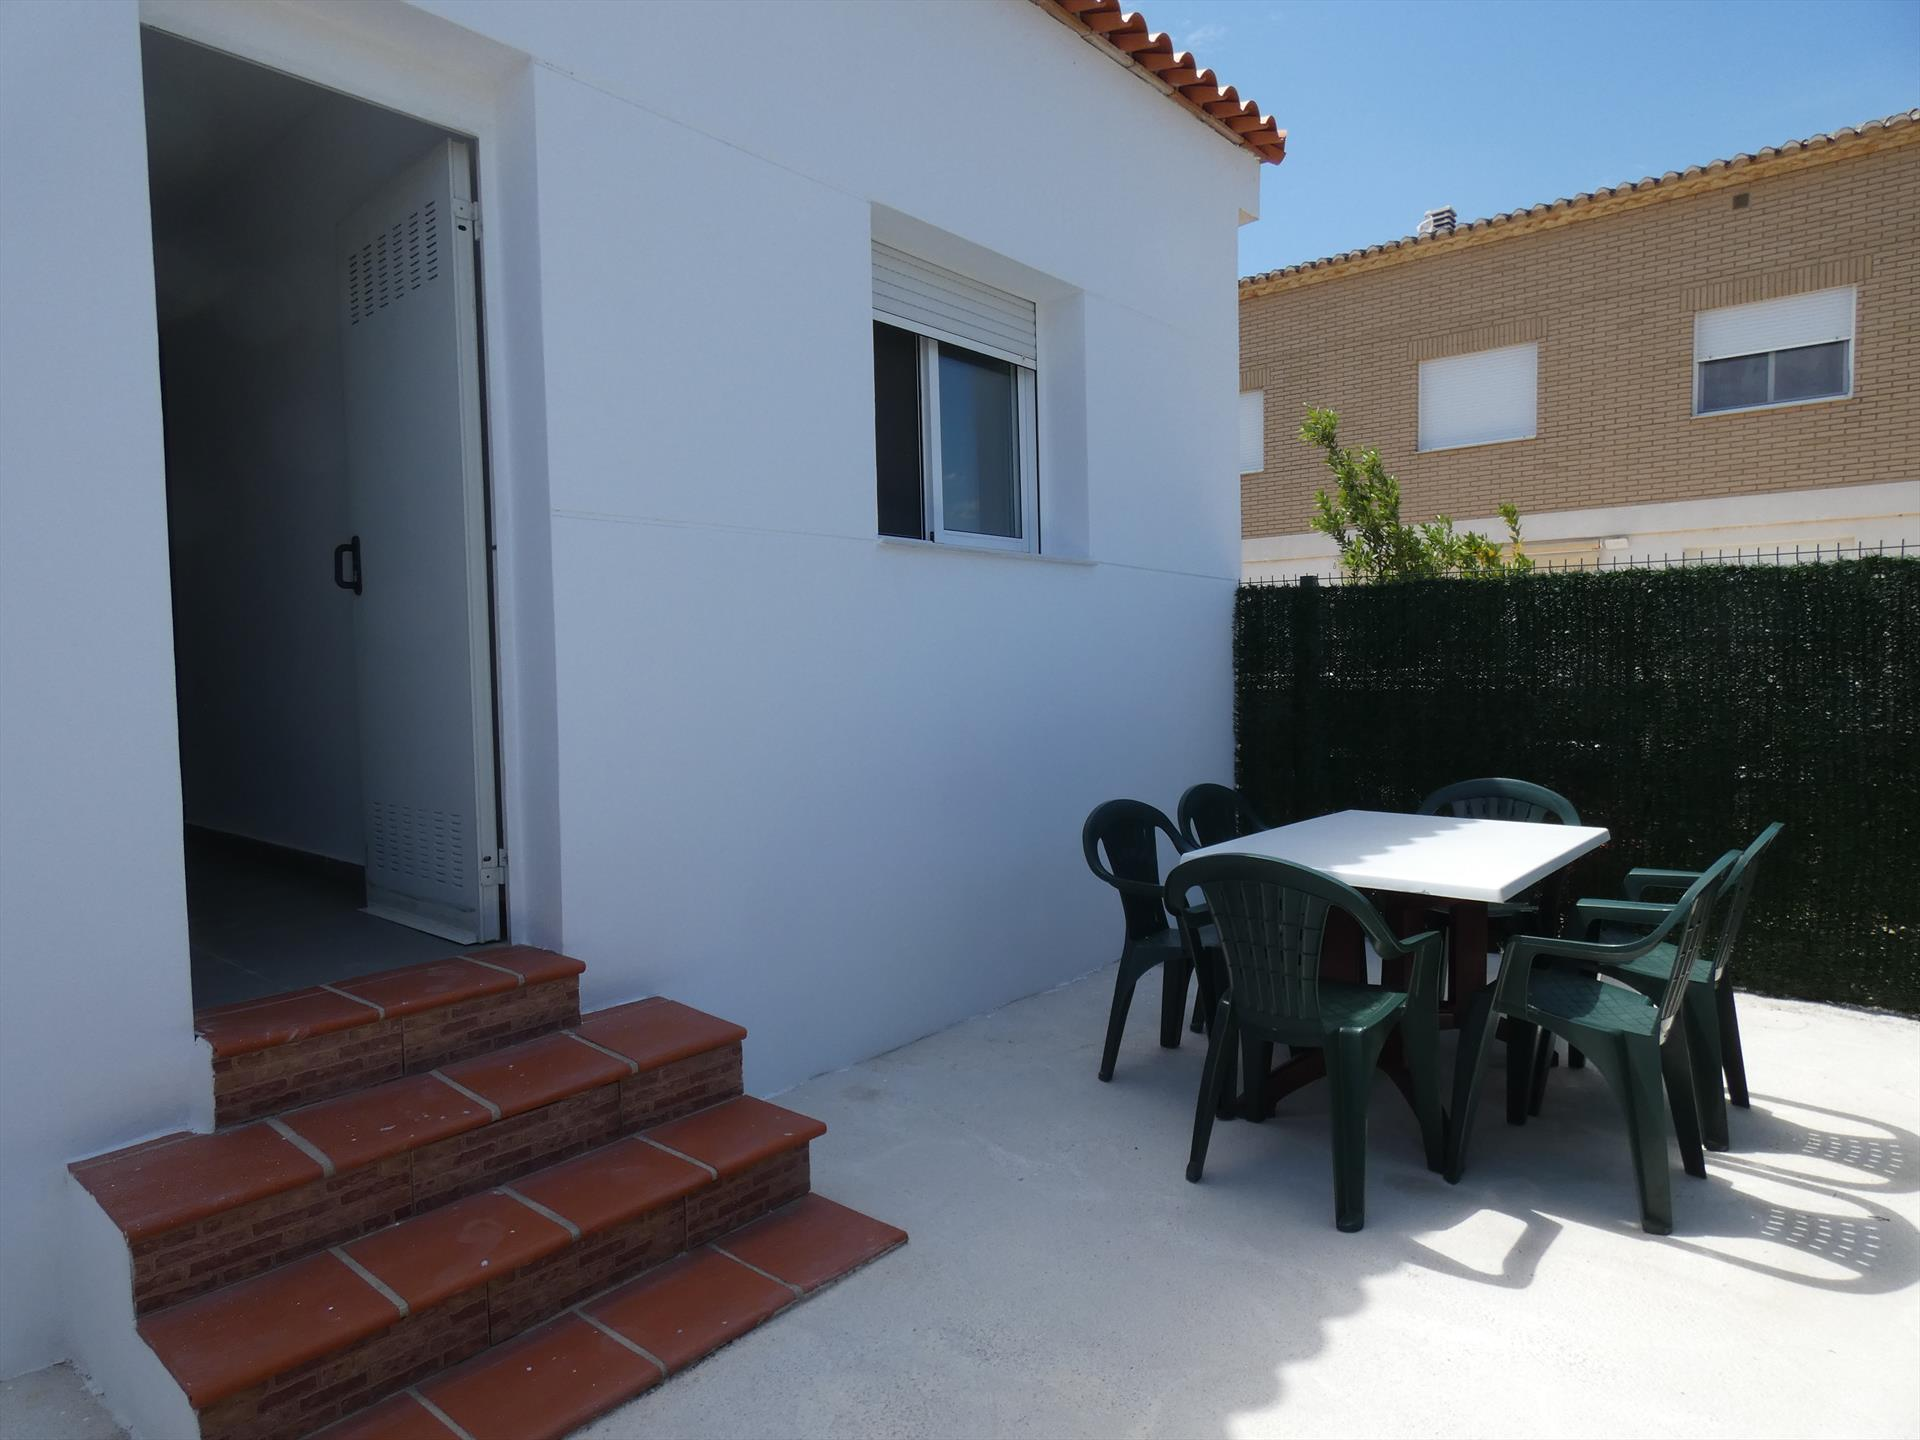 CH260 Aigua Blanca Sector 5, Modern and comfortable holiday house  with private pool in Oliva, on the Costa Blanca, Spain for 6 persons.....